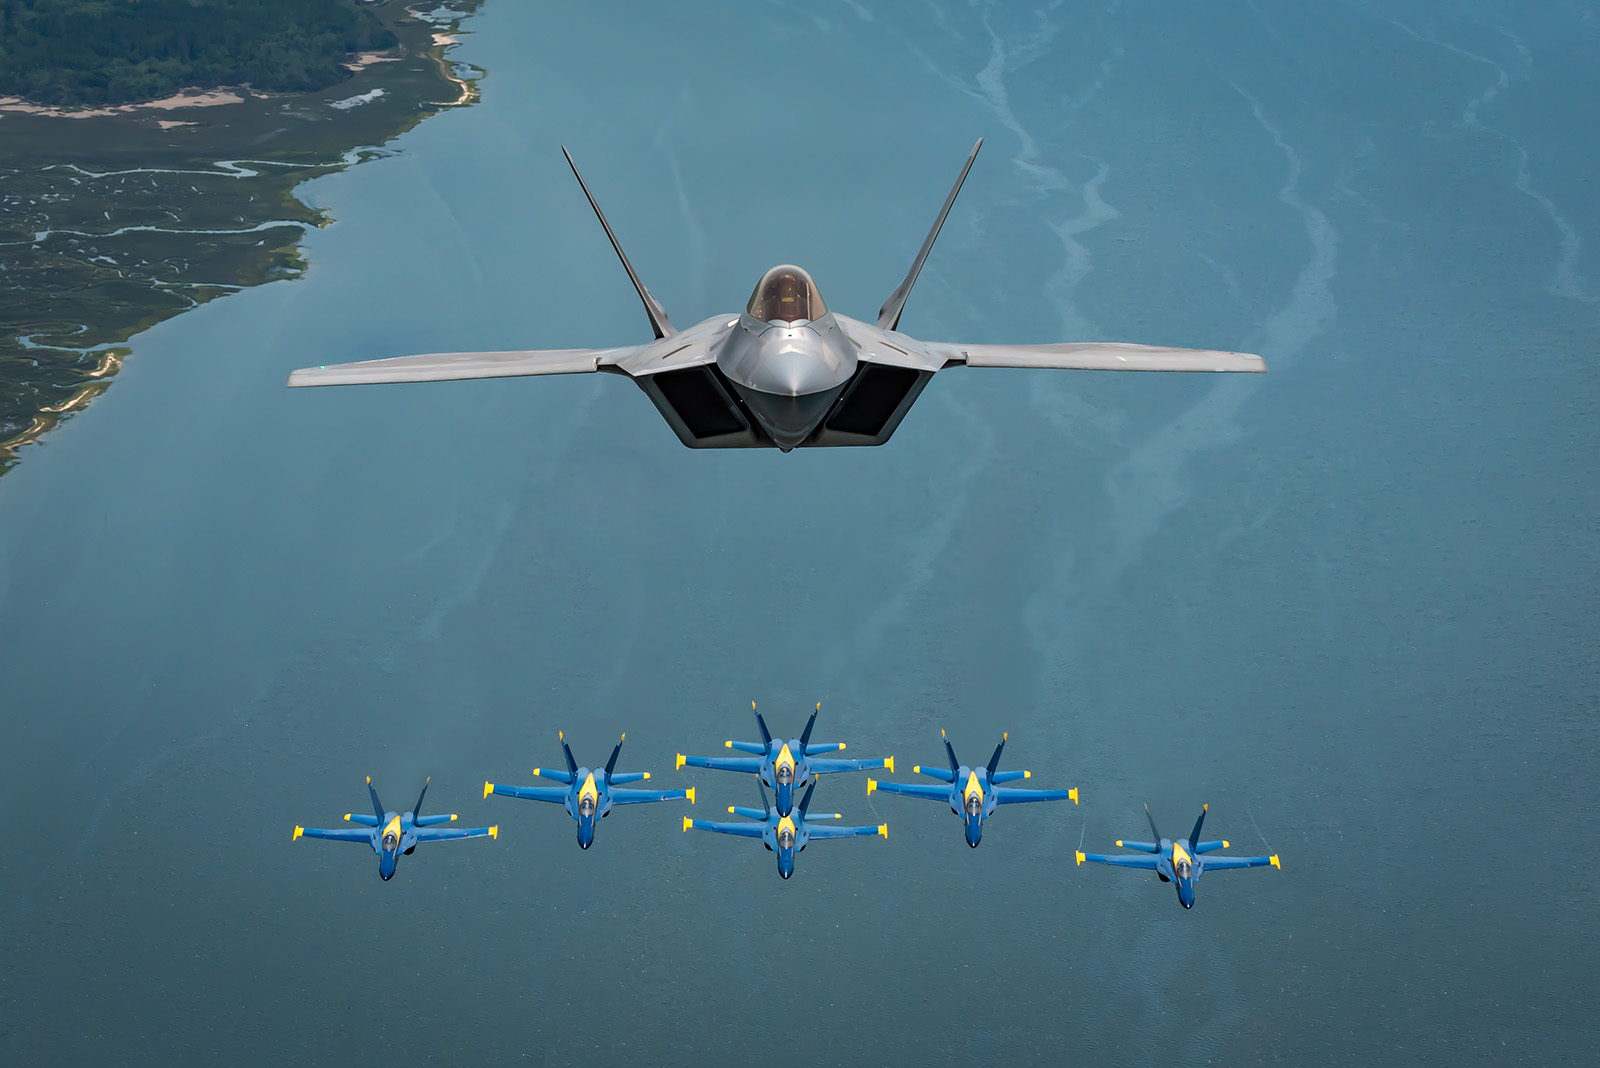 Maj. Paul Lopez, F-22 Demo Team commander, flies above the U.S. Navy Blue Angels' iconic diamond formation, over Beaufort, S.C., April 25, 2019. The historic flight featured two of the world's premier aerial demonstration teams side-by-side for the first time in history. (2nd Lt. Samuel Eckholm/Air Force)